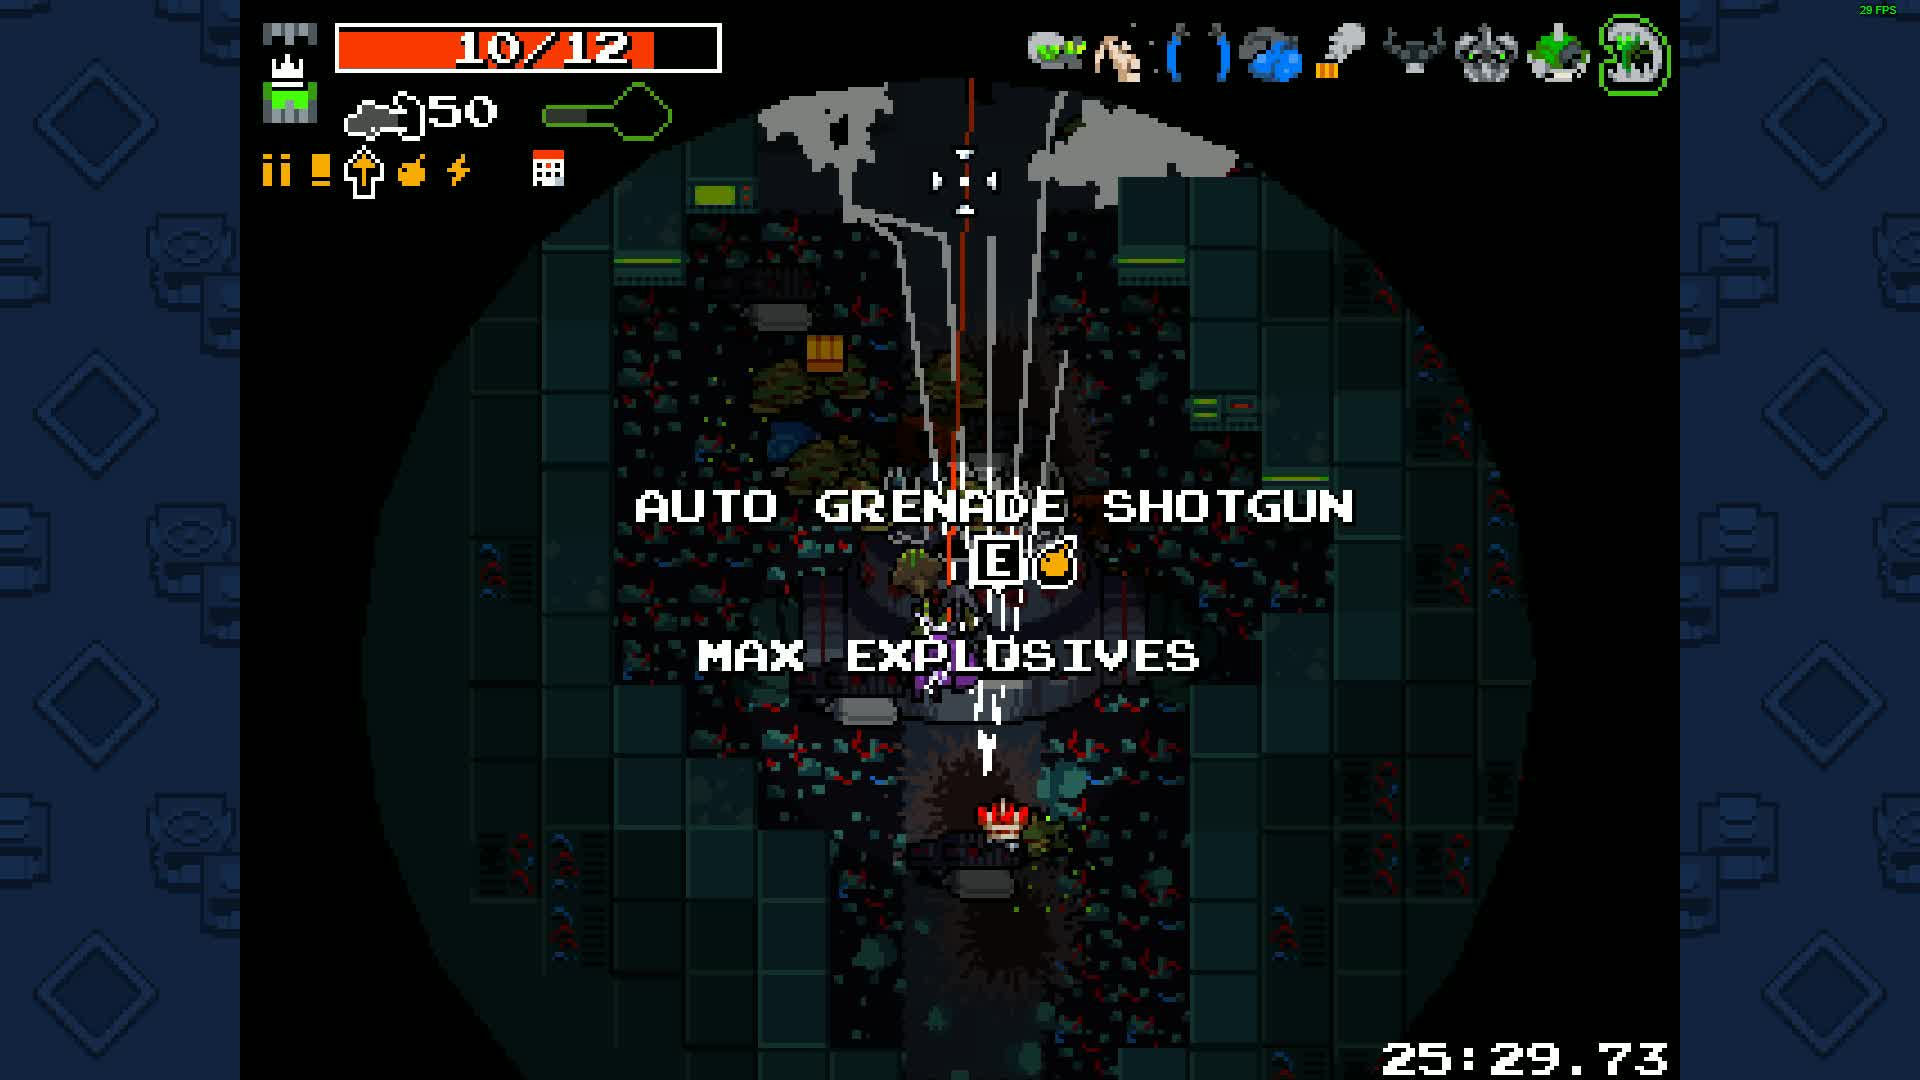 nuclearthrone, vlc-record-2019-03-06-16h47m31s-Nuclear Throne 2019.03.06 - 16.46.45.04.DVR.mp4- GIFs